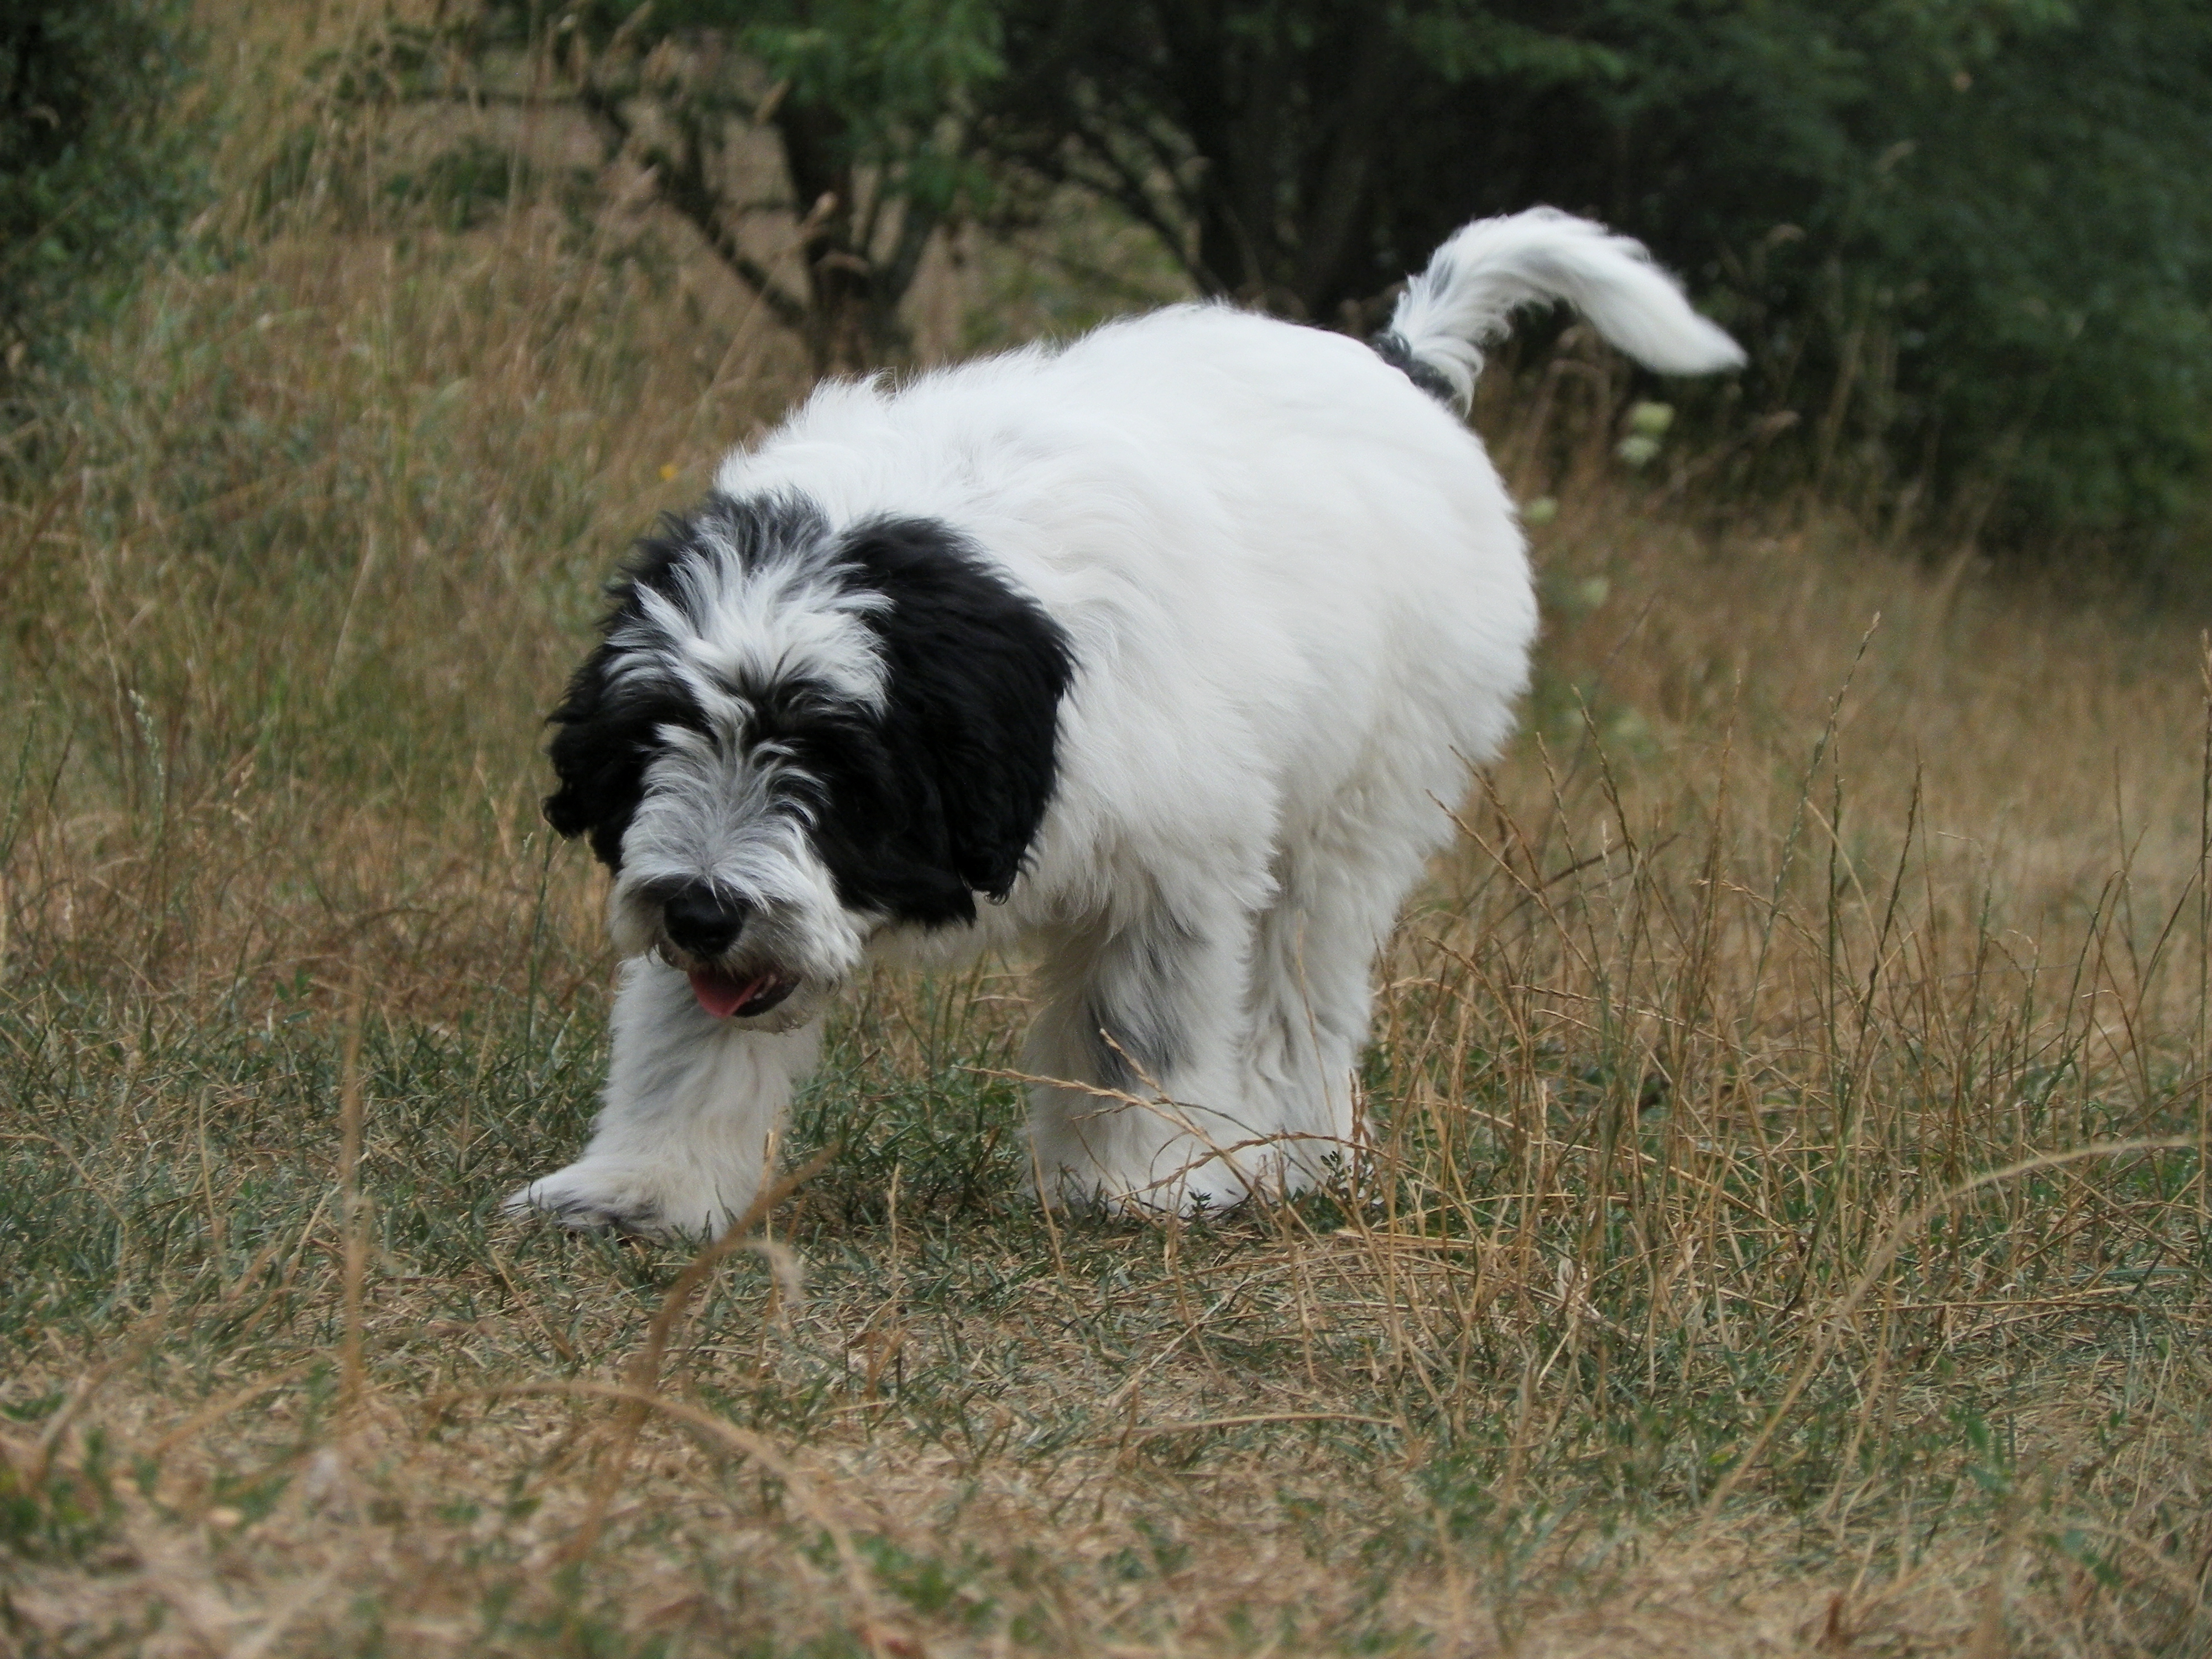 Description Polish Lowland Sheepdog puppy Bruno by Vetulani.JPG